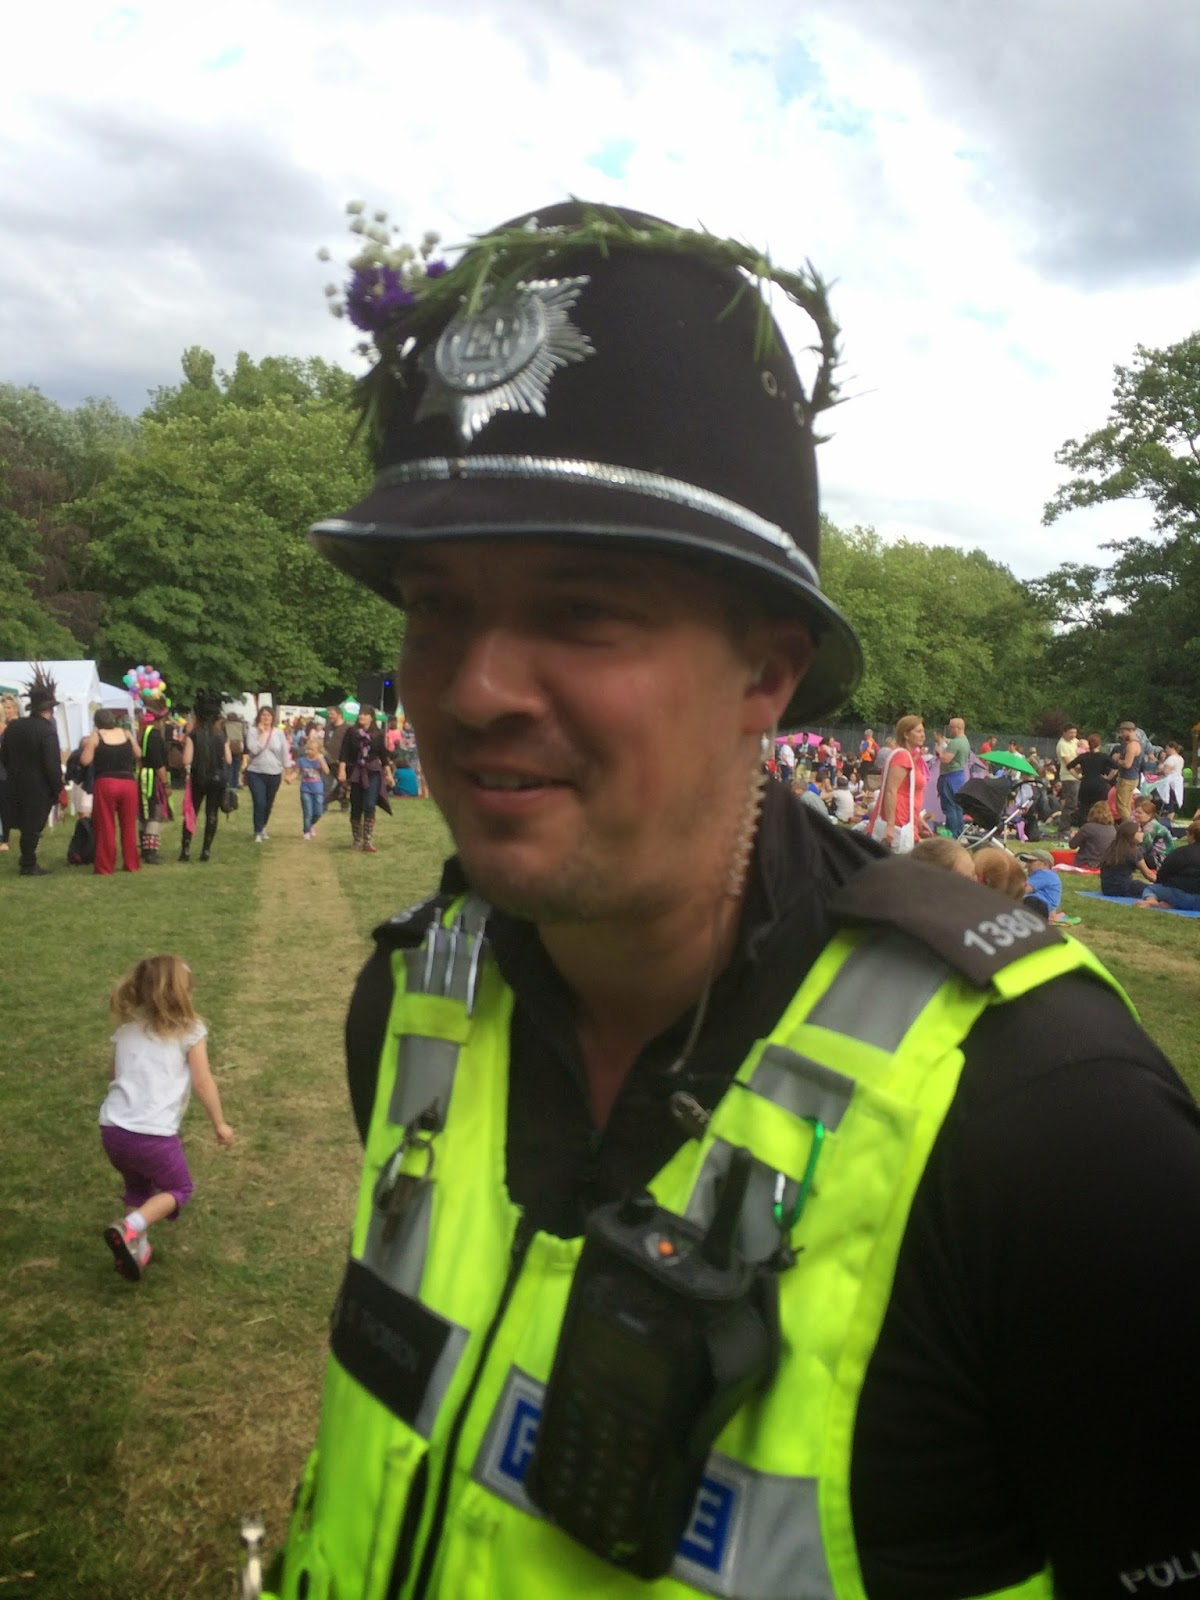 A local policeman gets into the festival spirit with a flower crown.